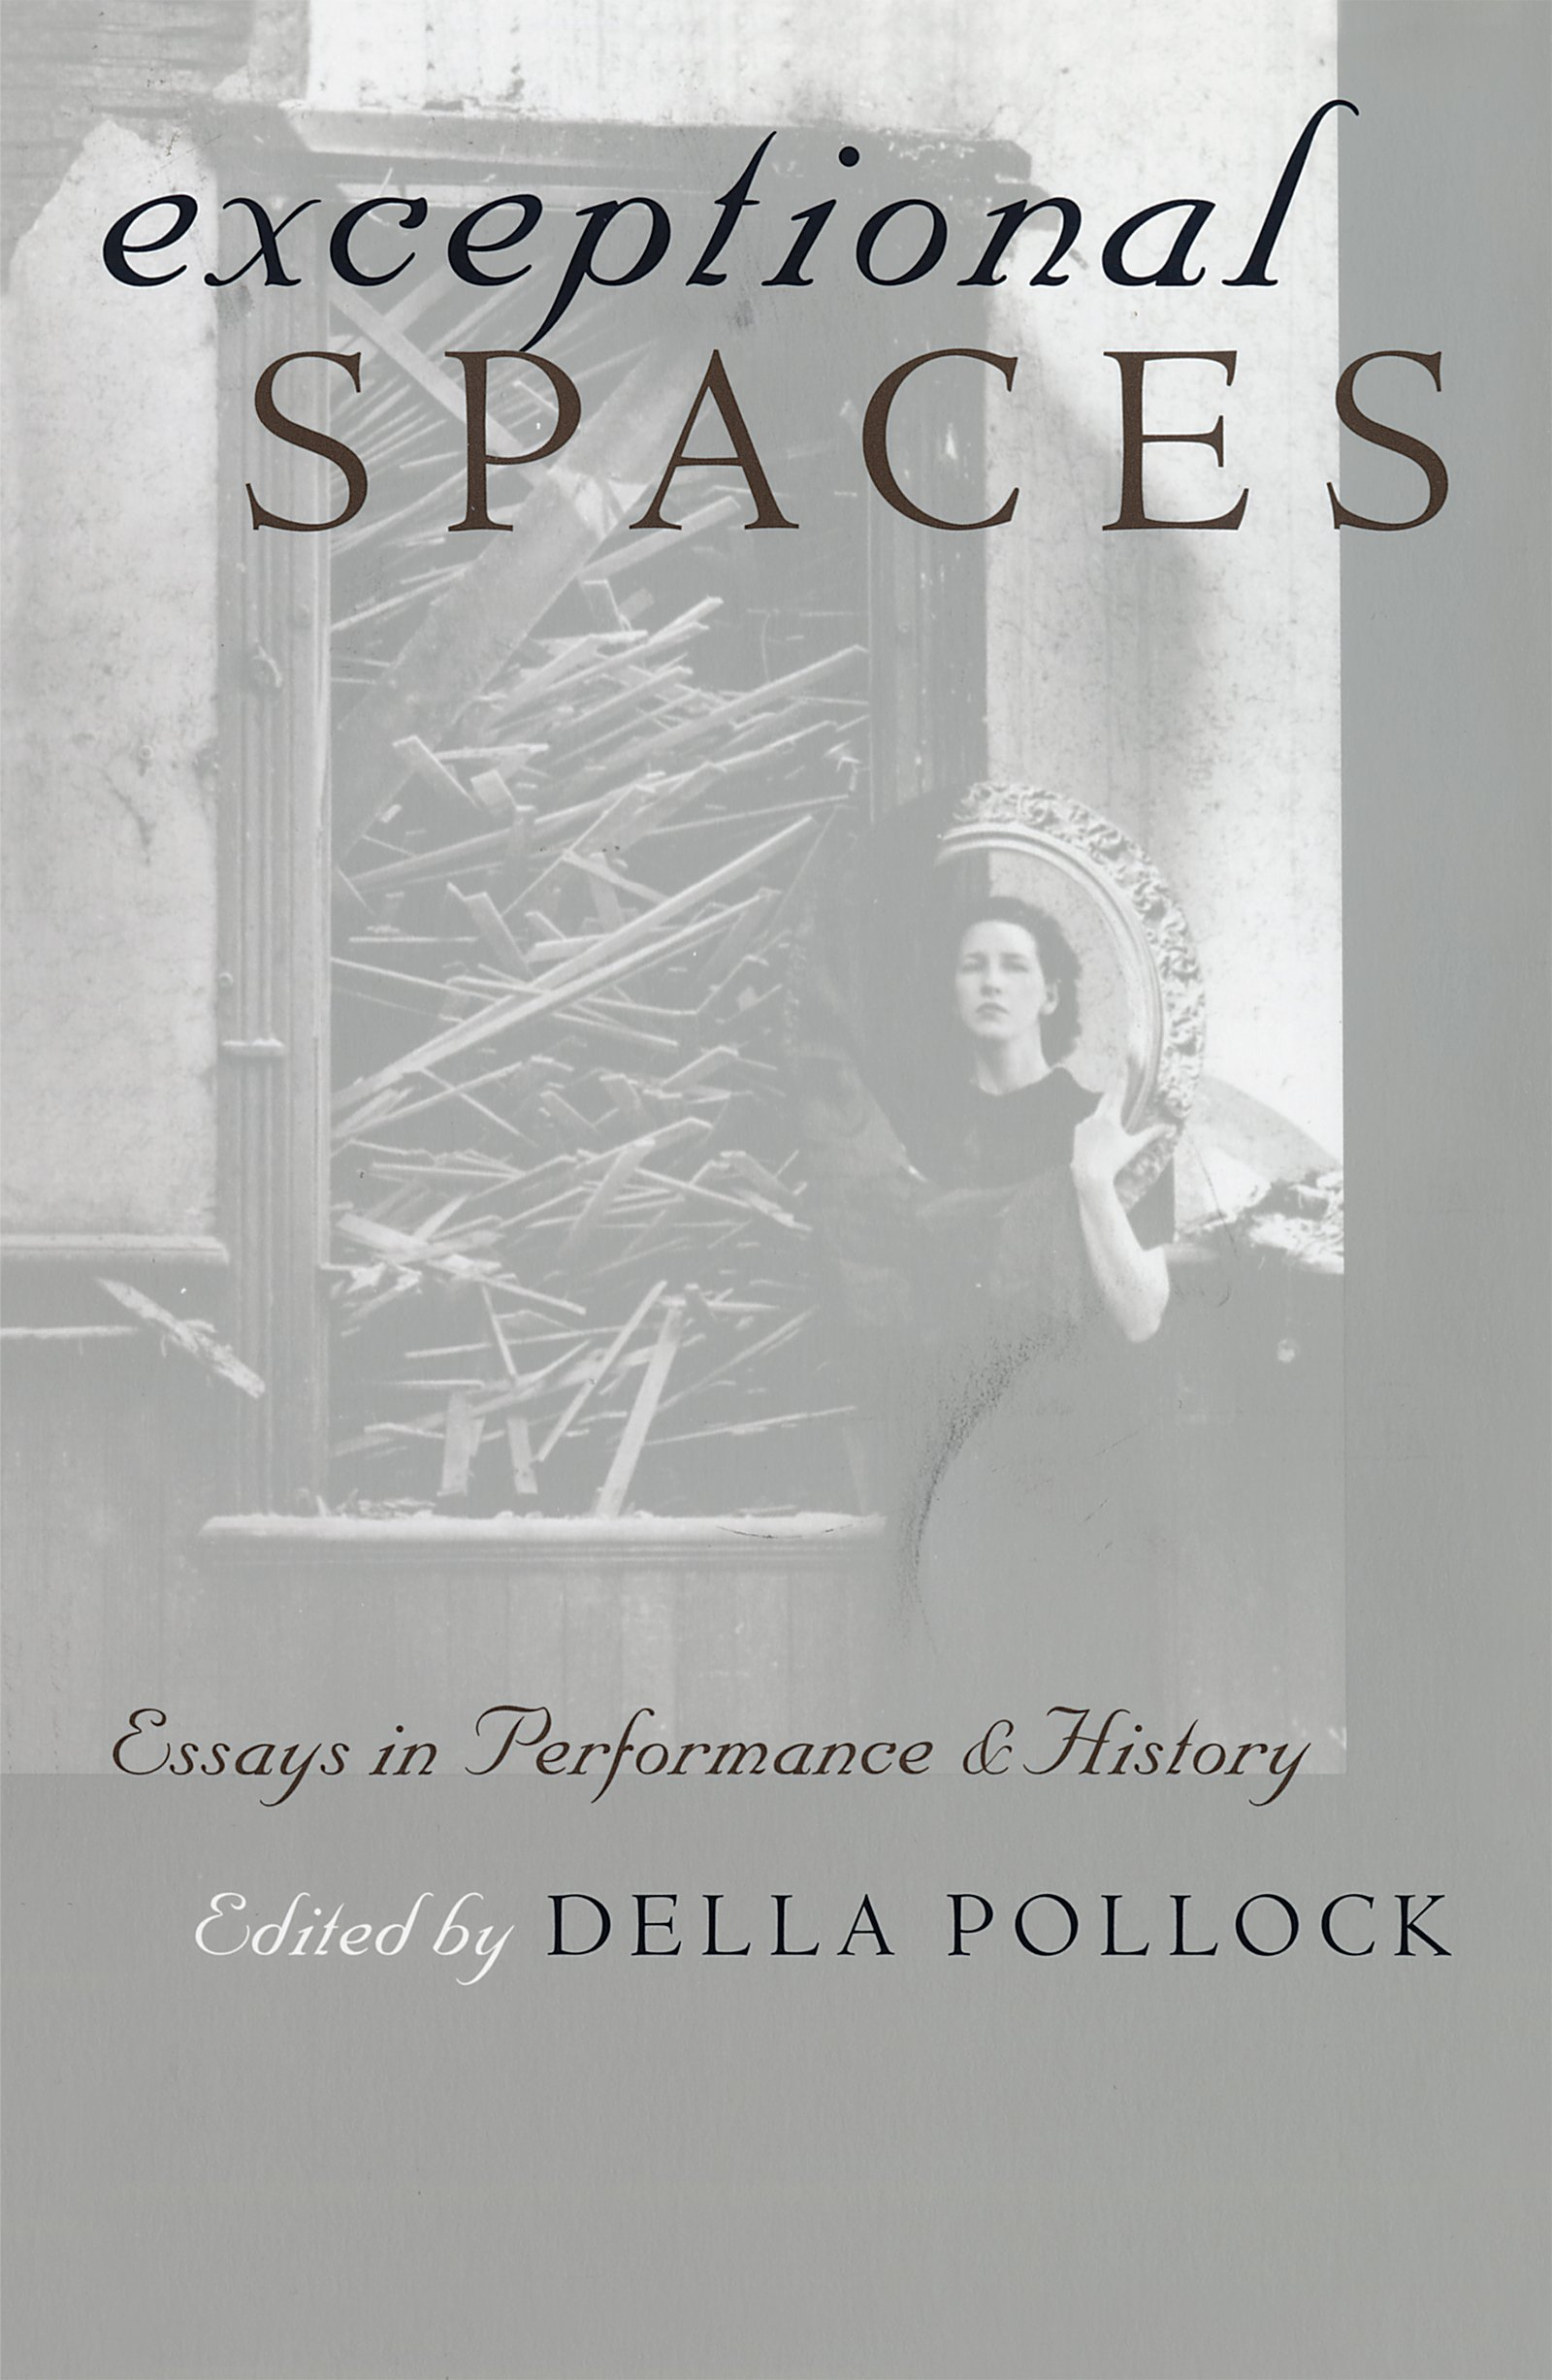 Exceptional Spaces: Essays in Performance and History